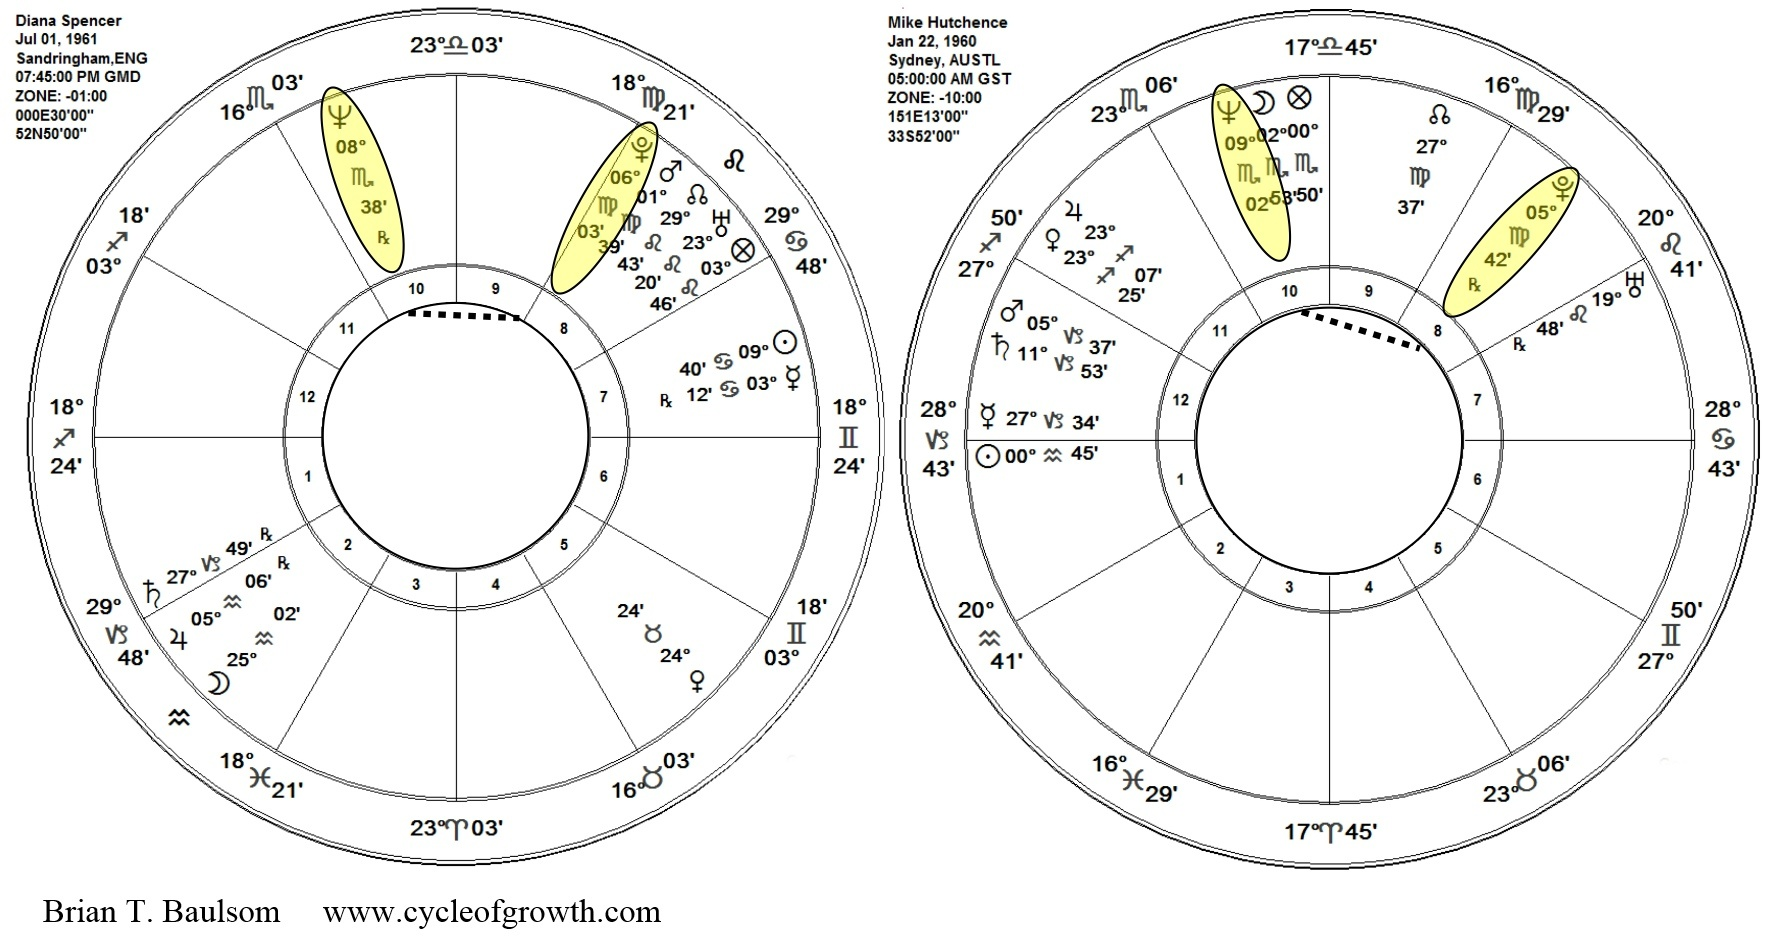 Are there any indicators of fame in my natal chart? I have